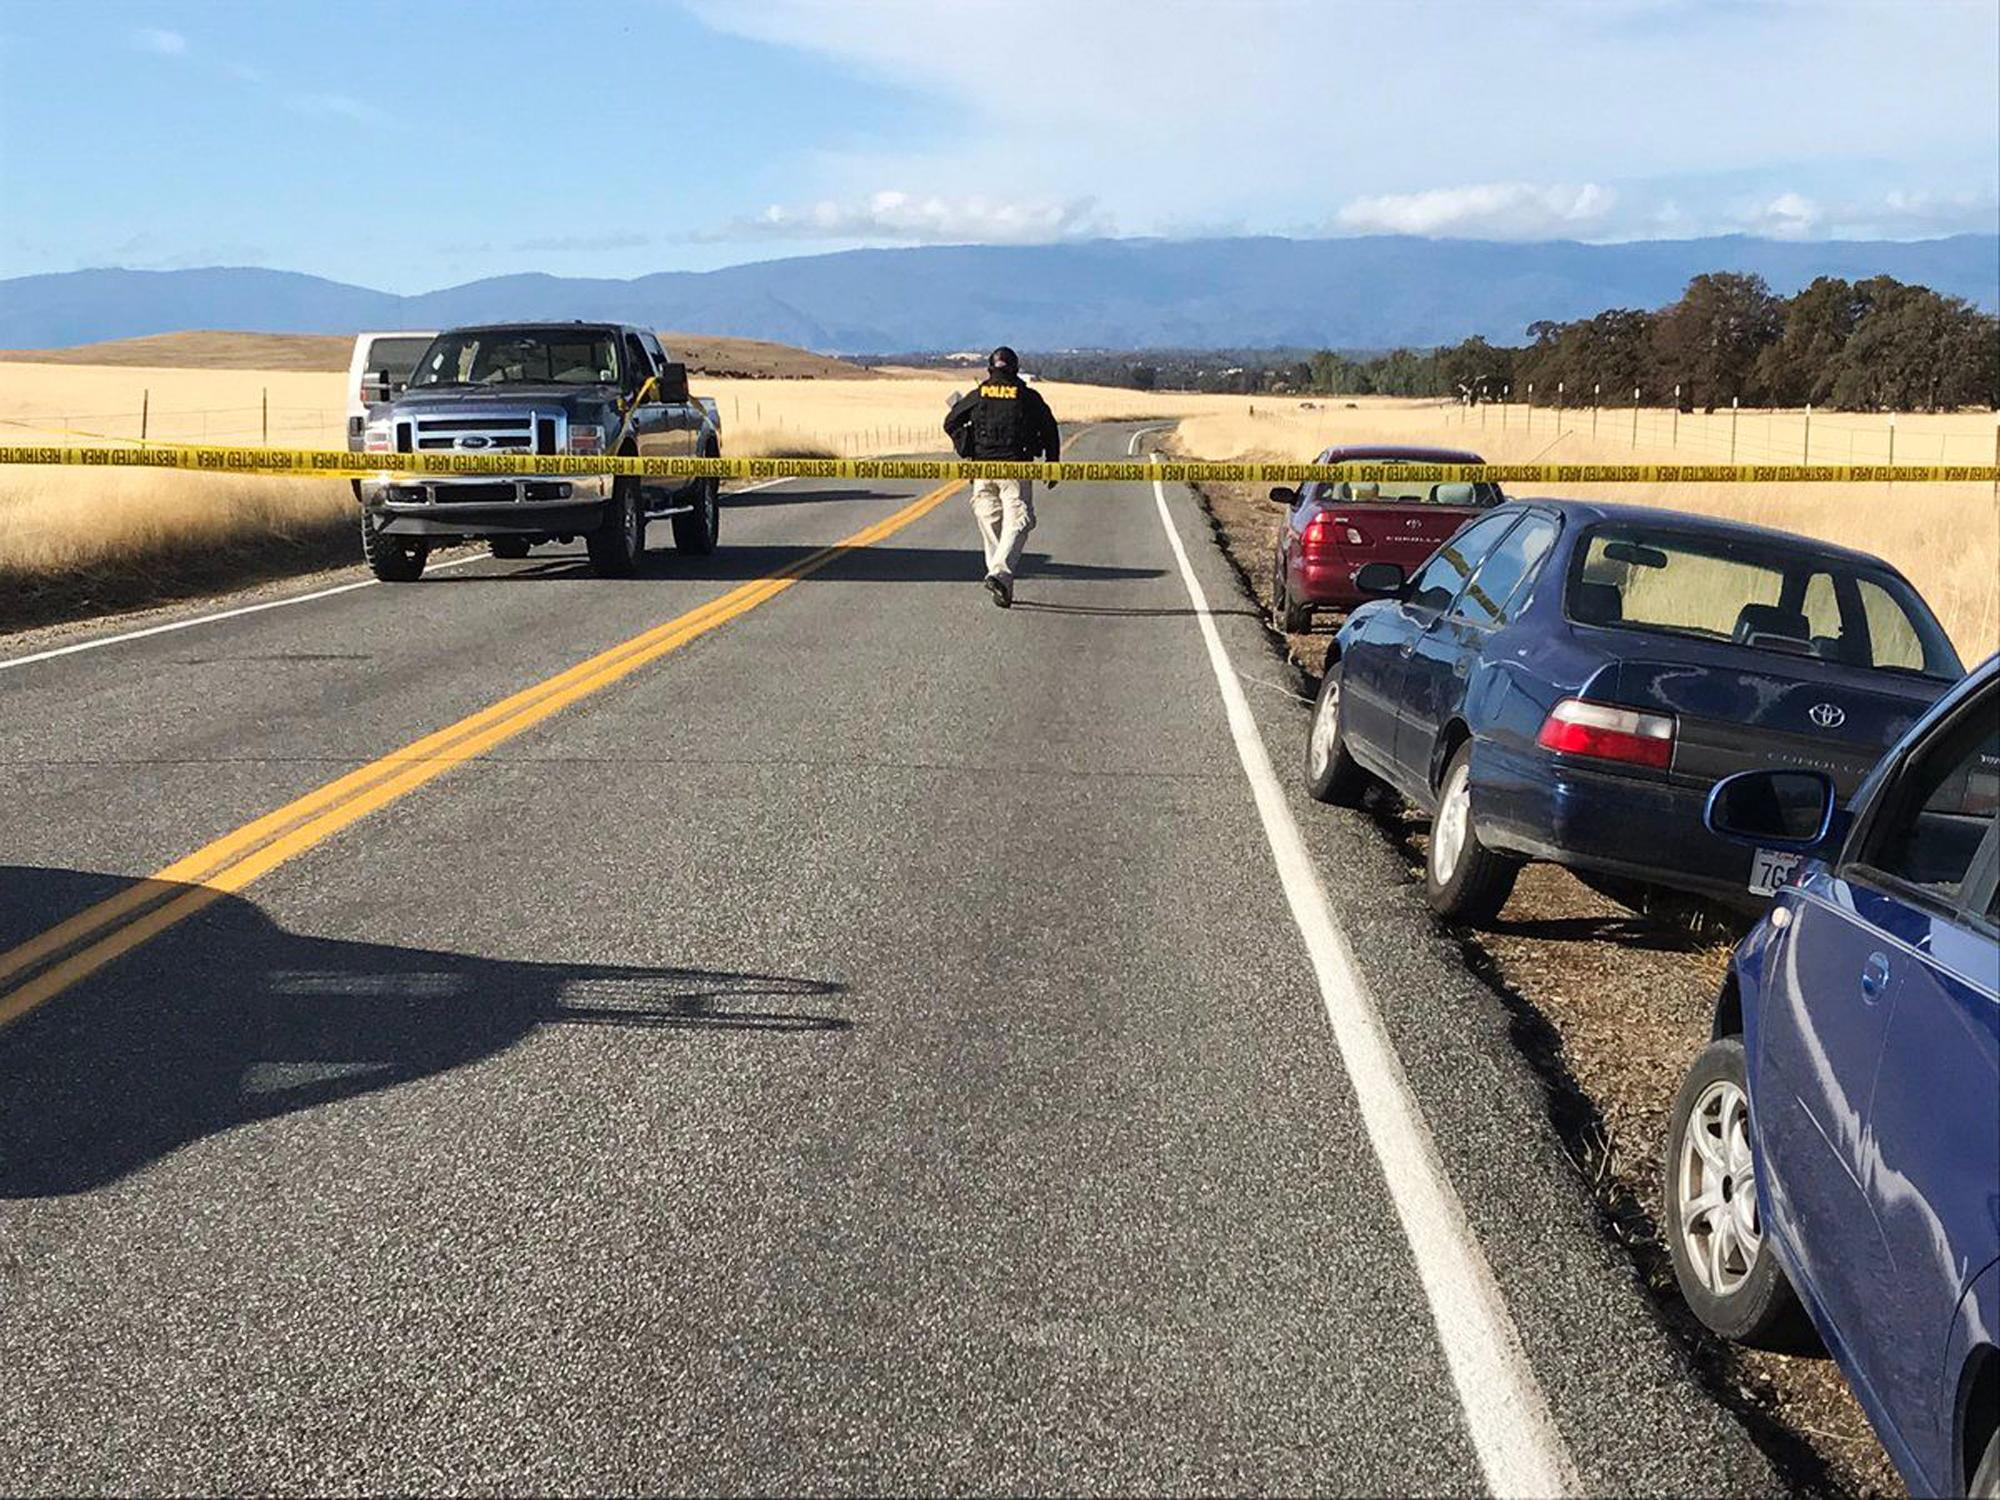 Shooter Ran Victims Off the Road and Chased Them on Foot, Family Says